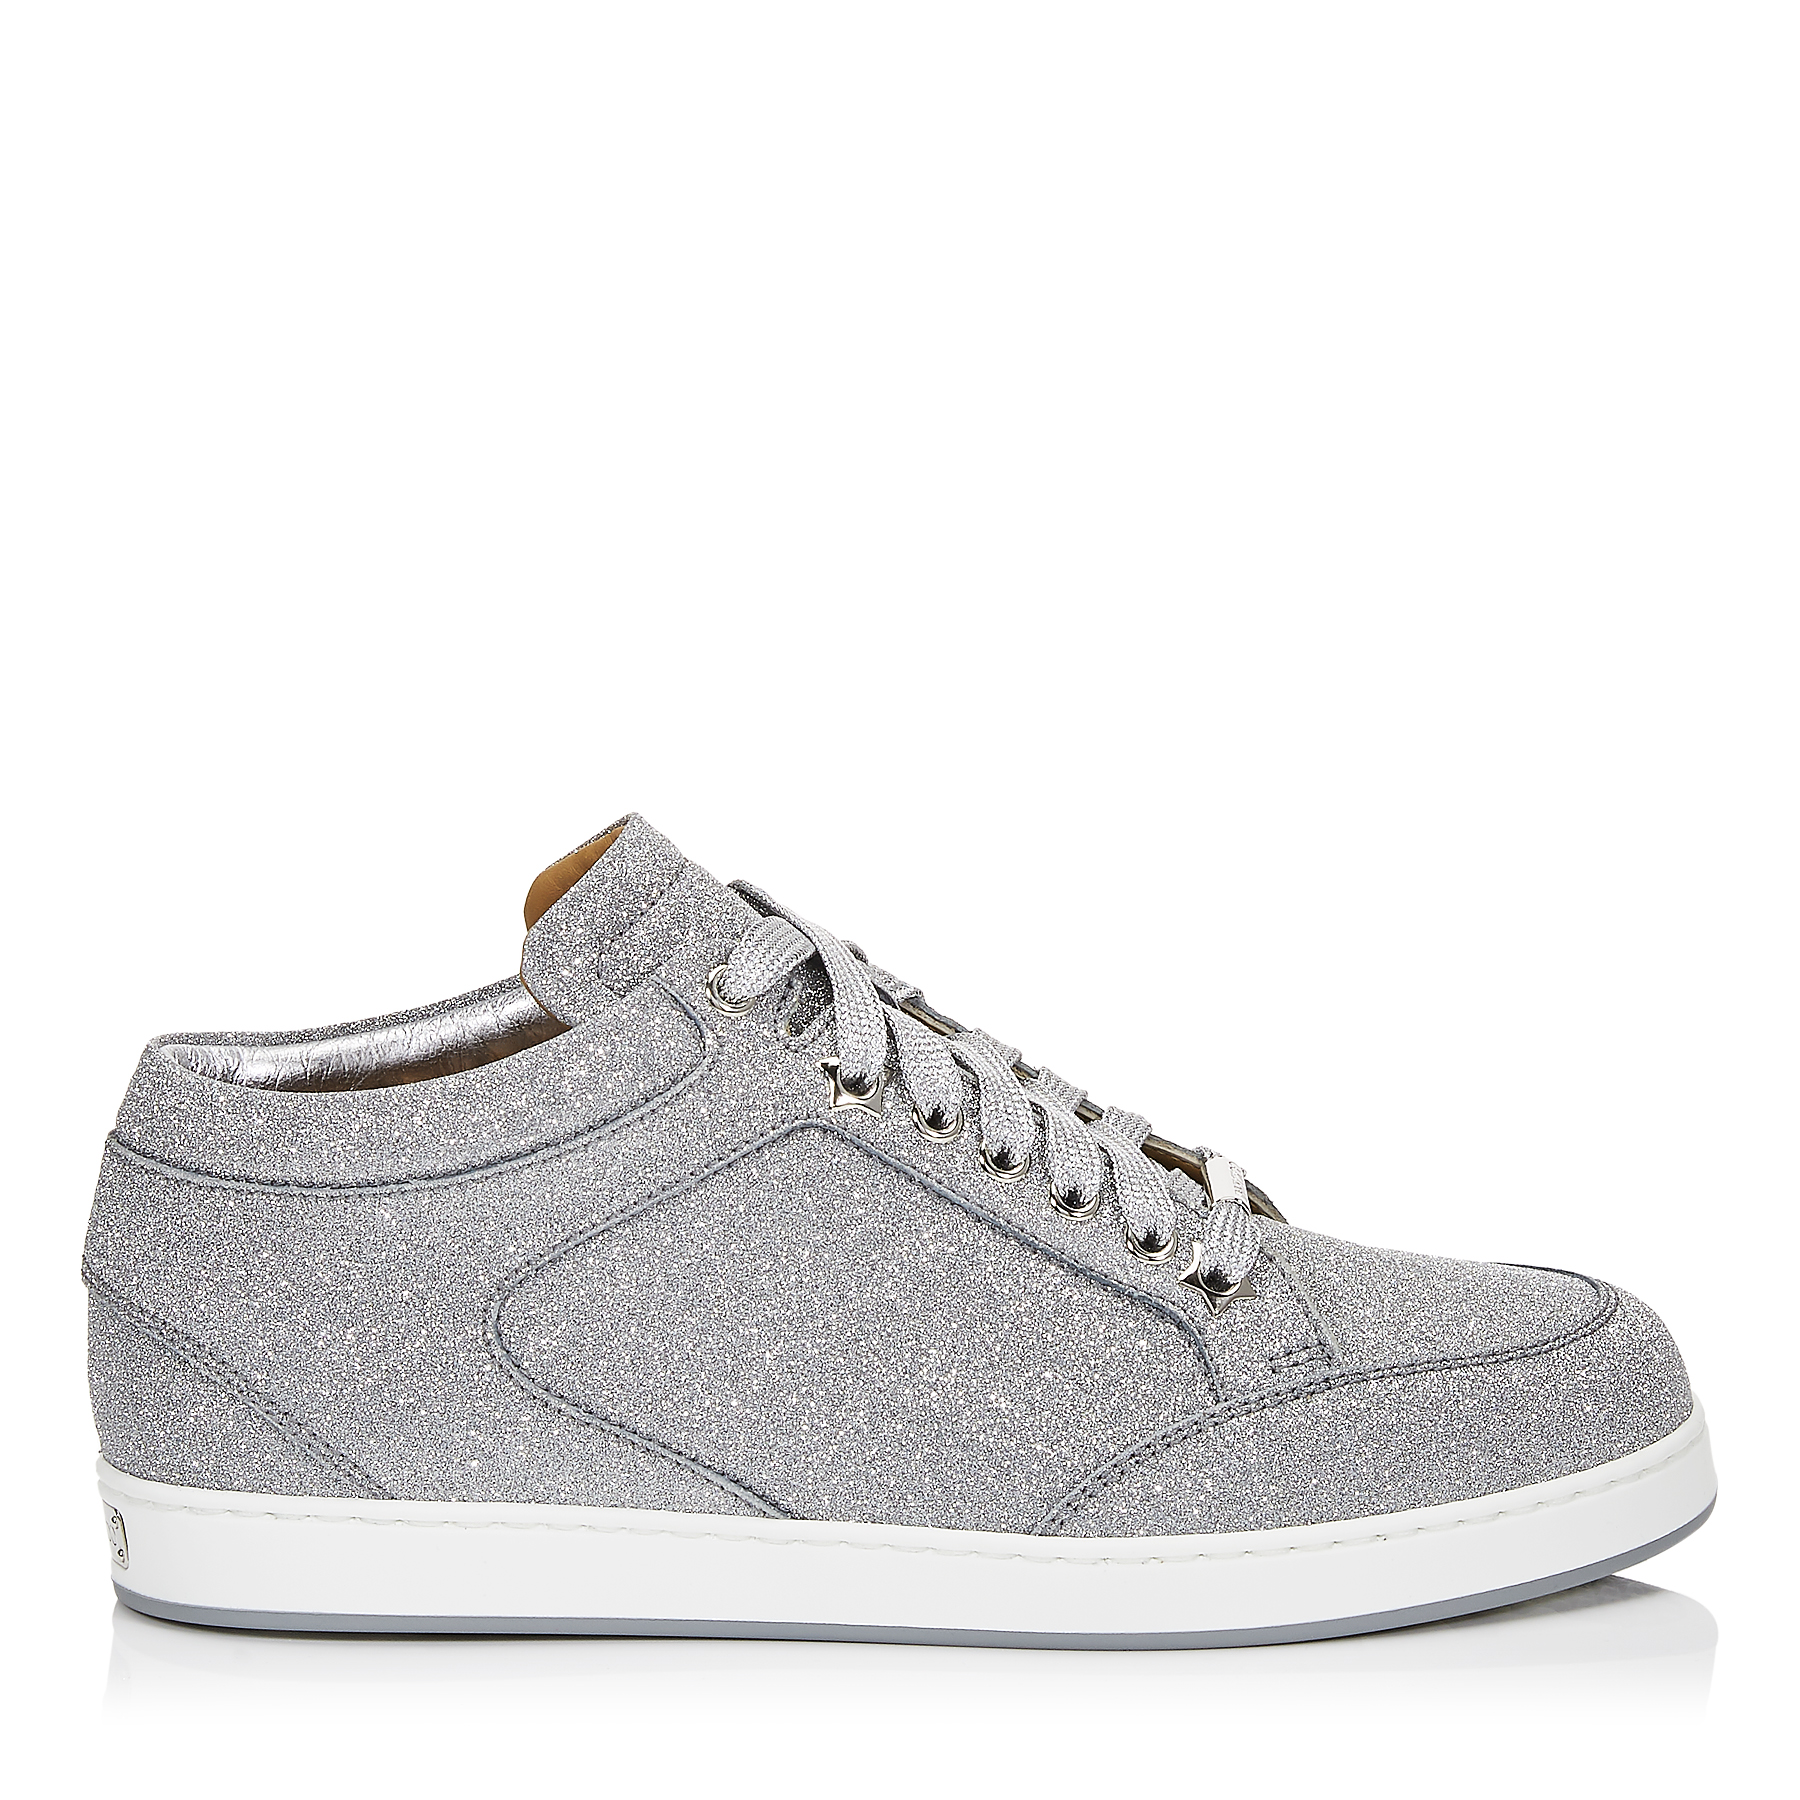 MIAMI Silver Mix Fine Glitter Leather Trainers by Jimmy Choo